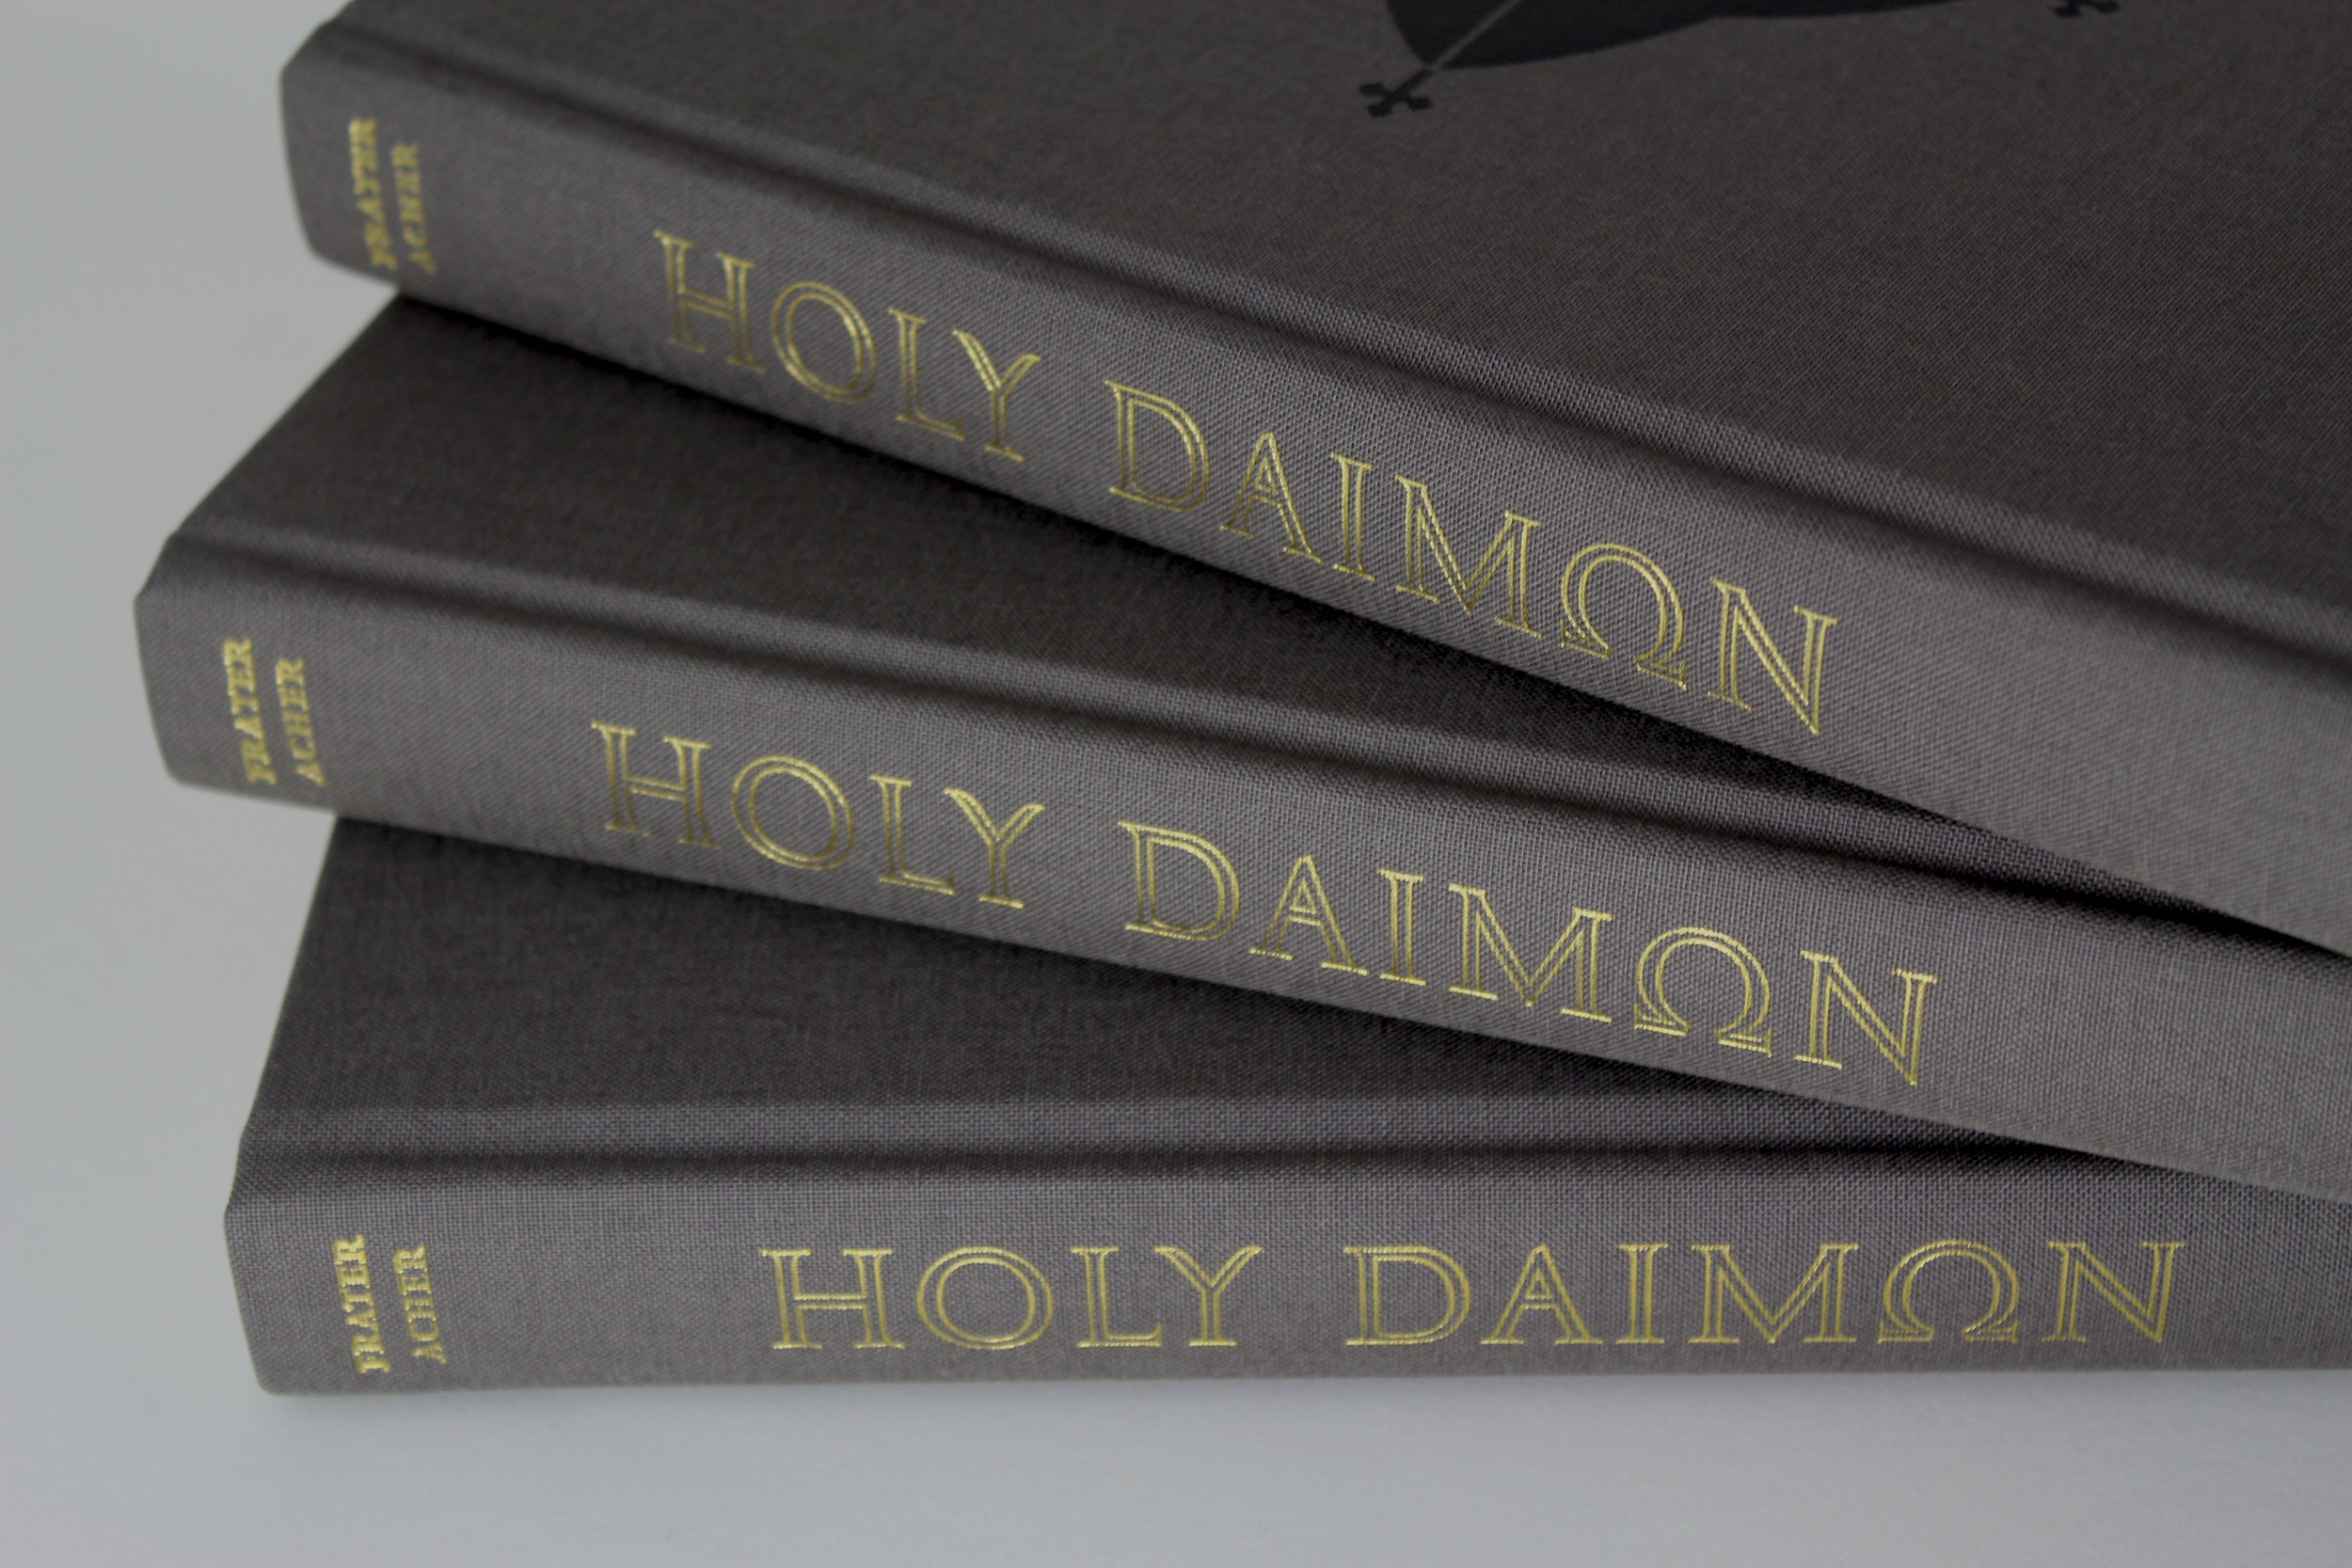 Gold blocking to the spine of the standard hardback edition.